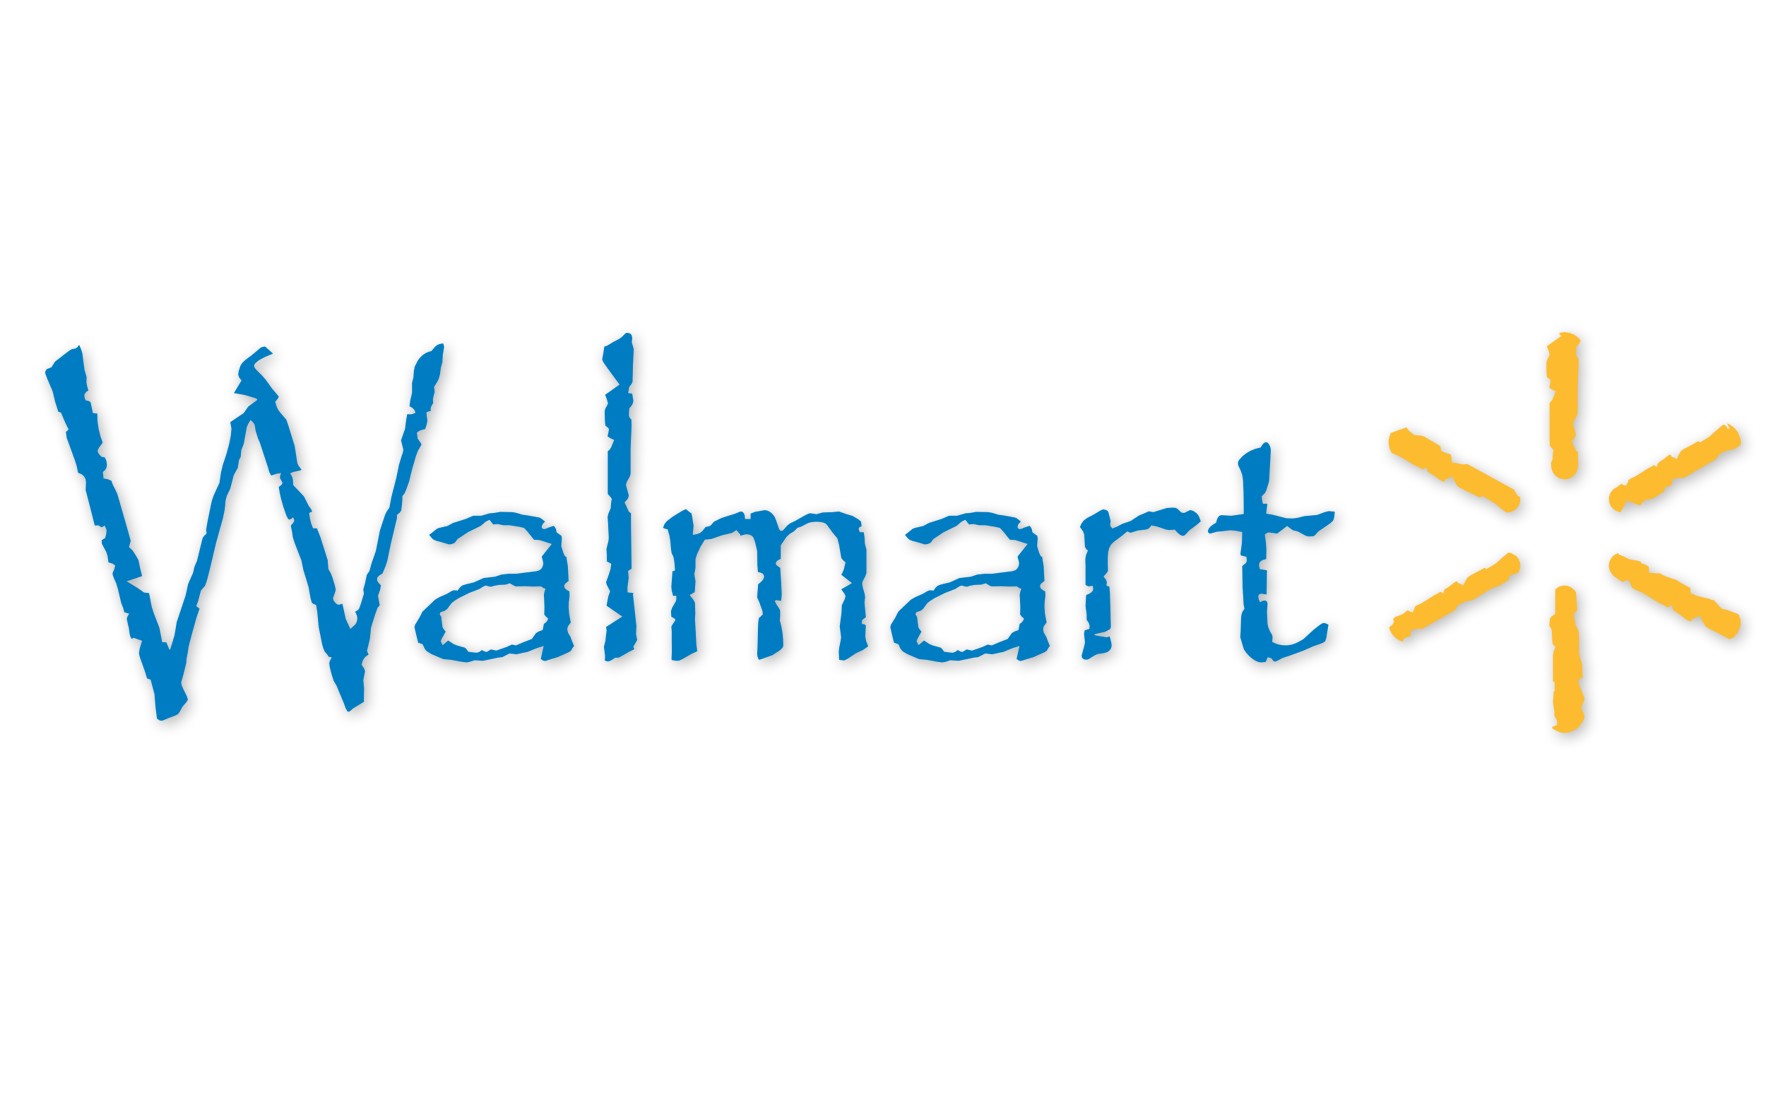 Free Walmart Logo Pictures Clipart image #27968